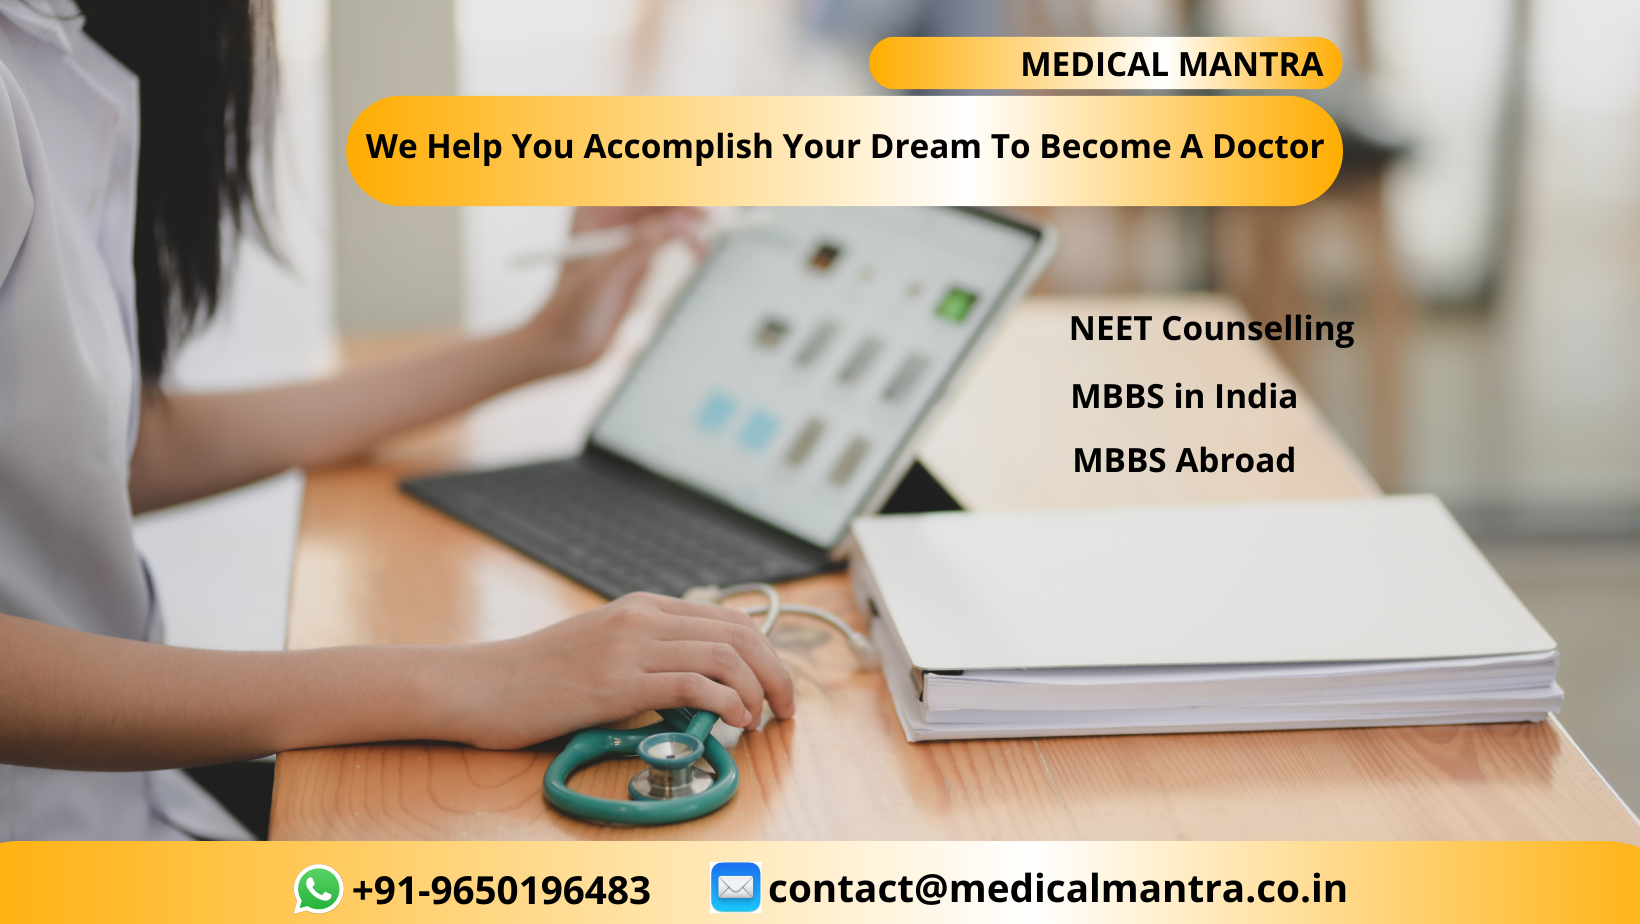 MBBS in India & Abroad